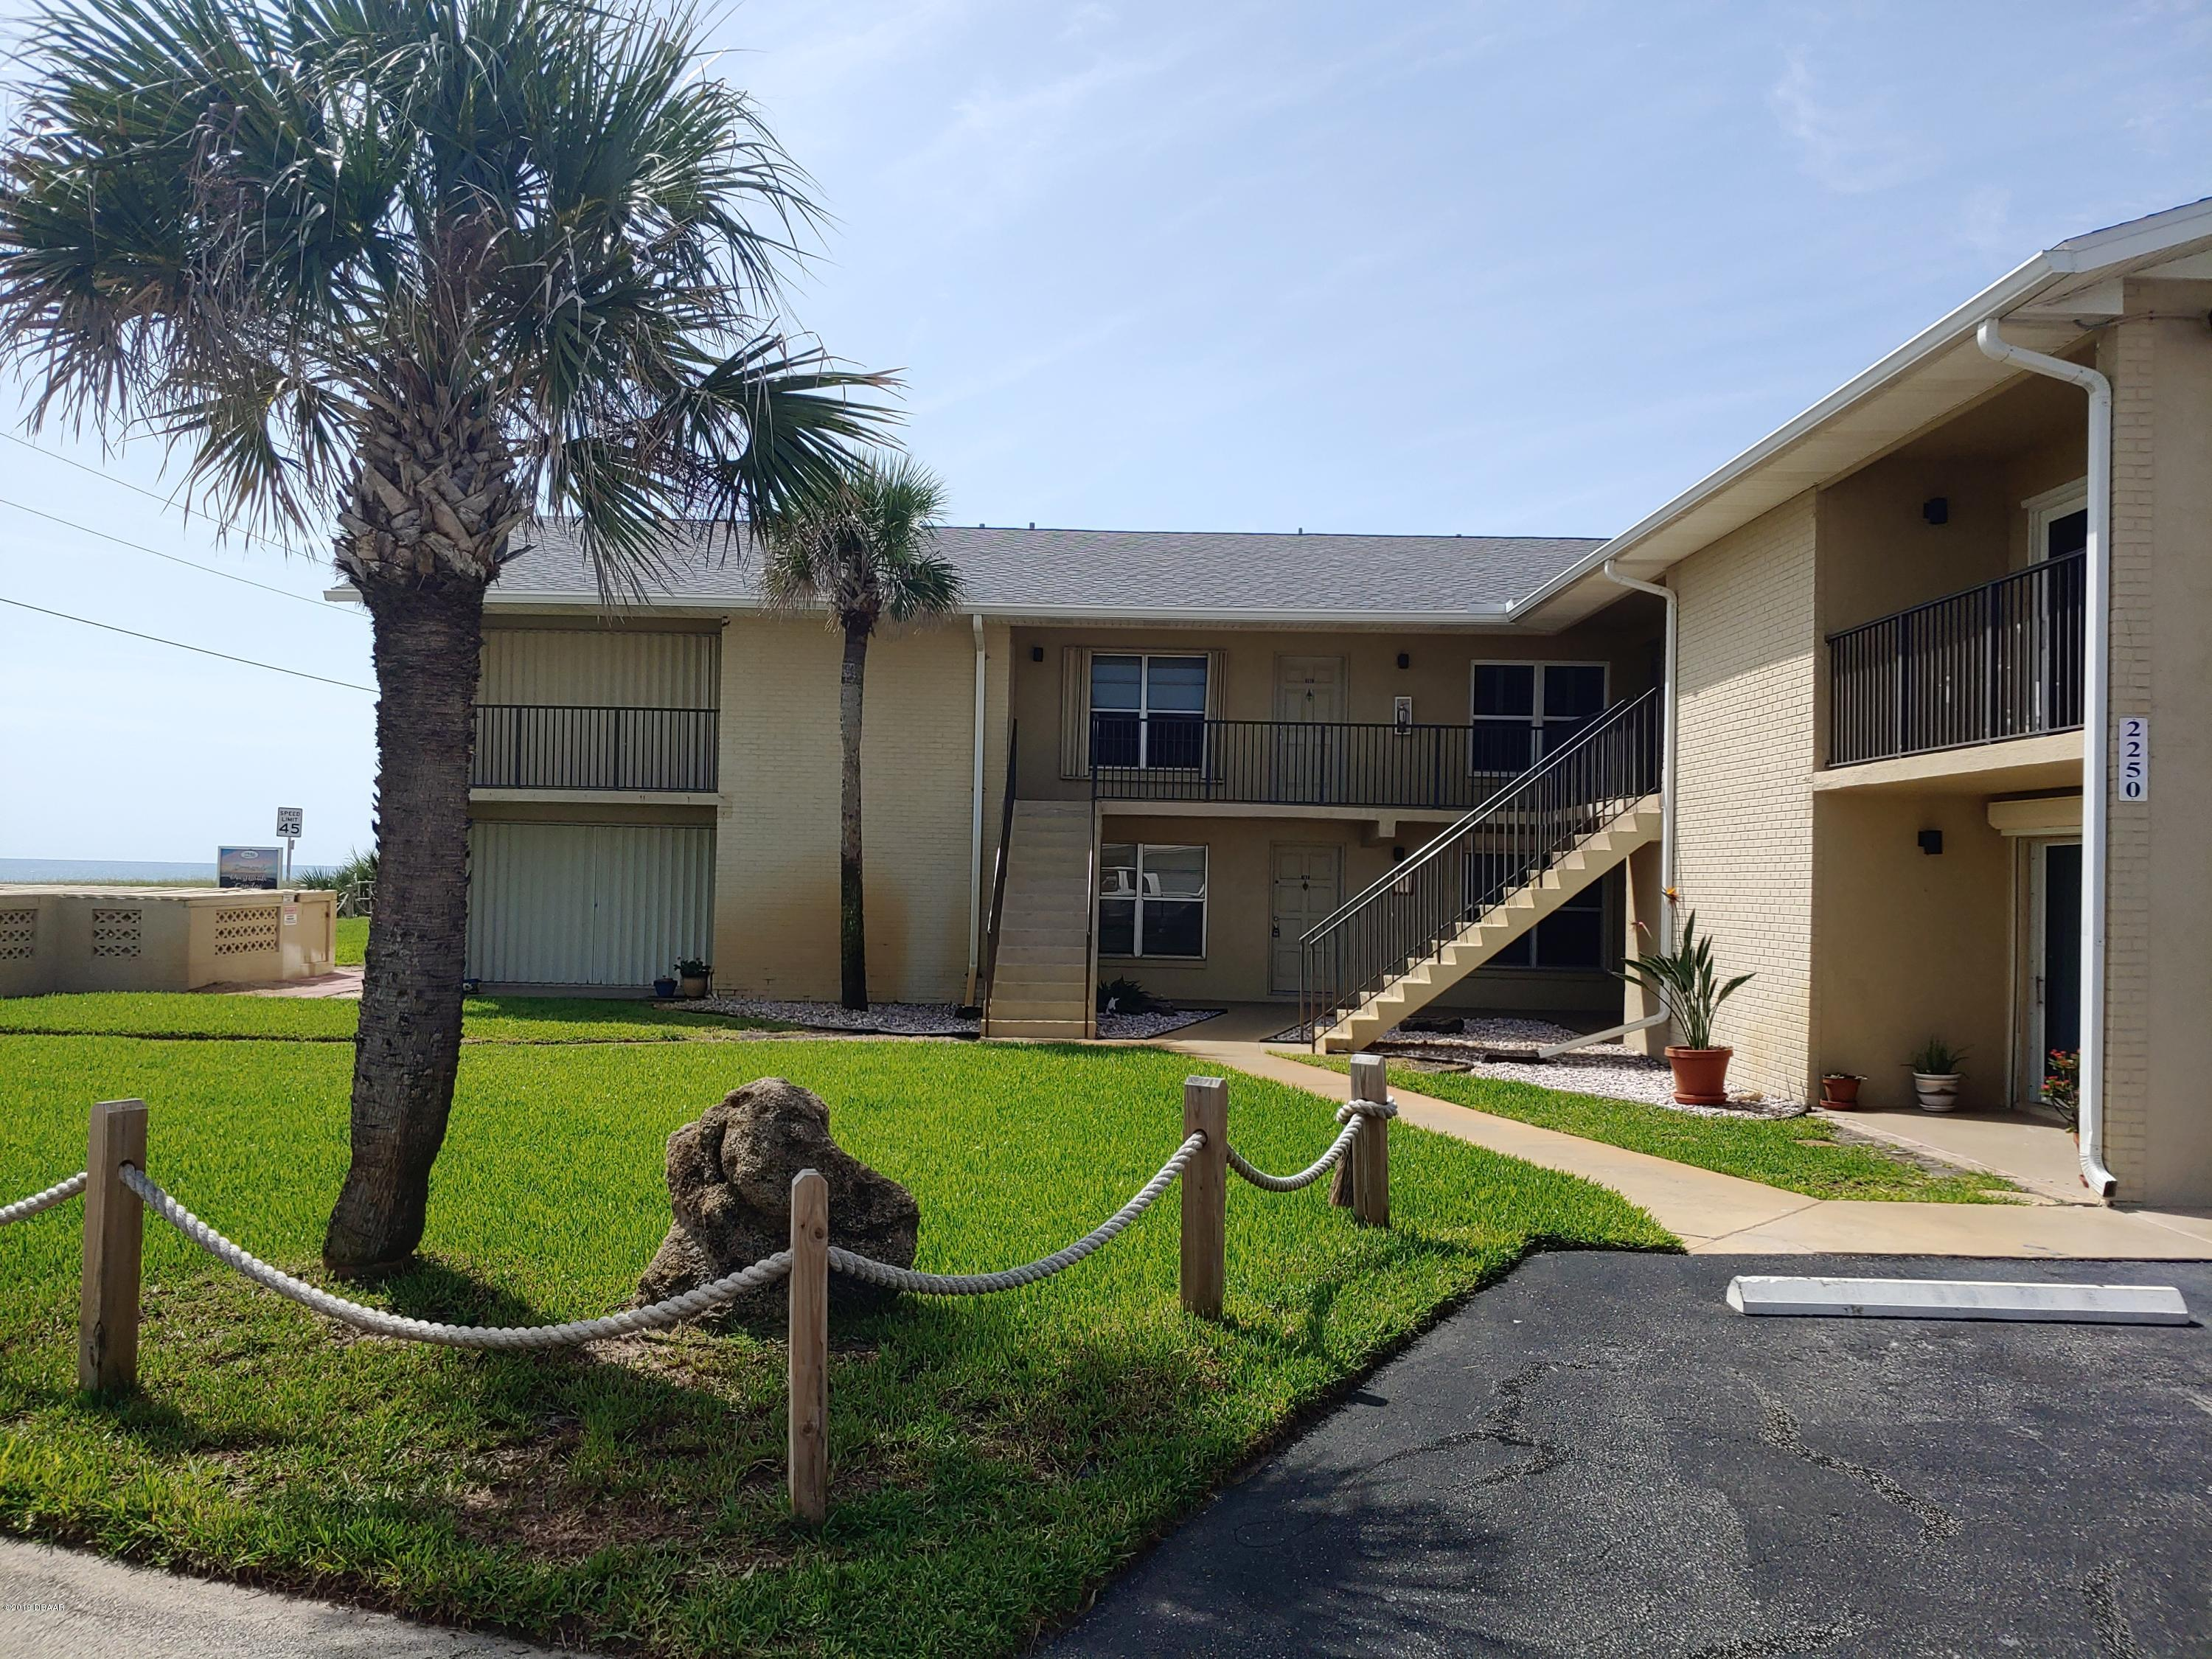 2250 Ocean Shore Boulevard, Ormond-By-The-Sea, Florida